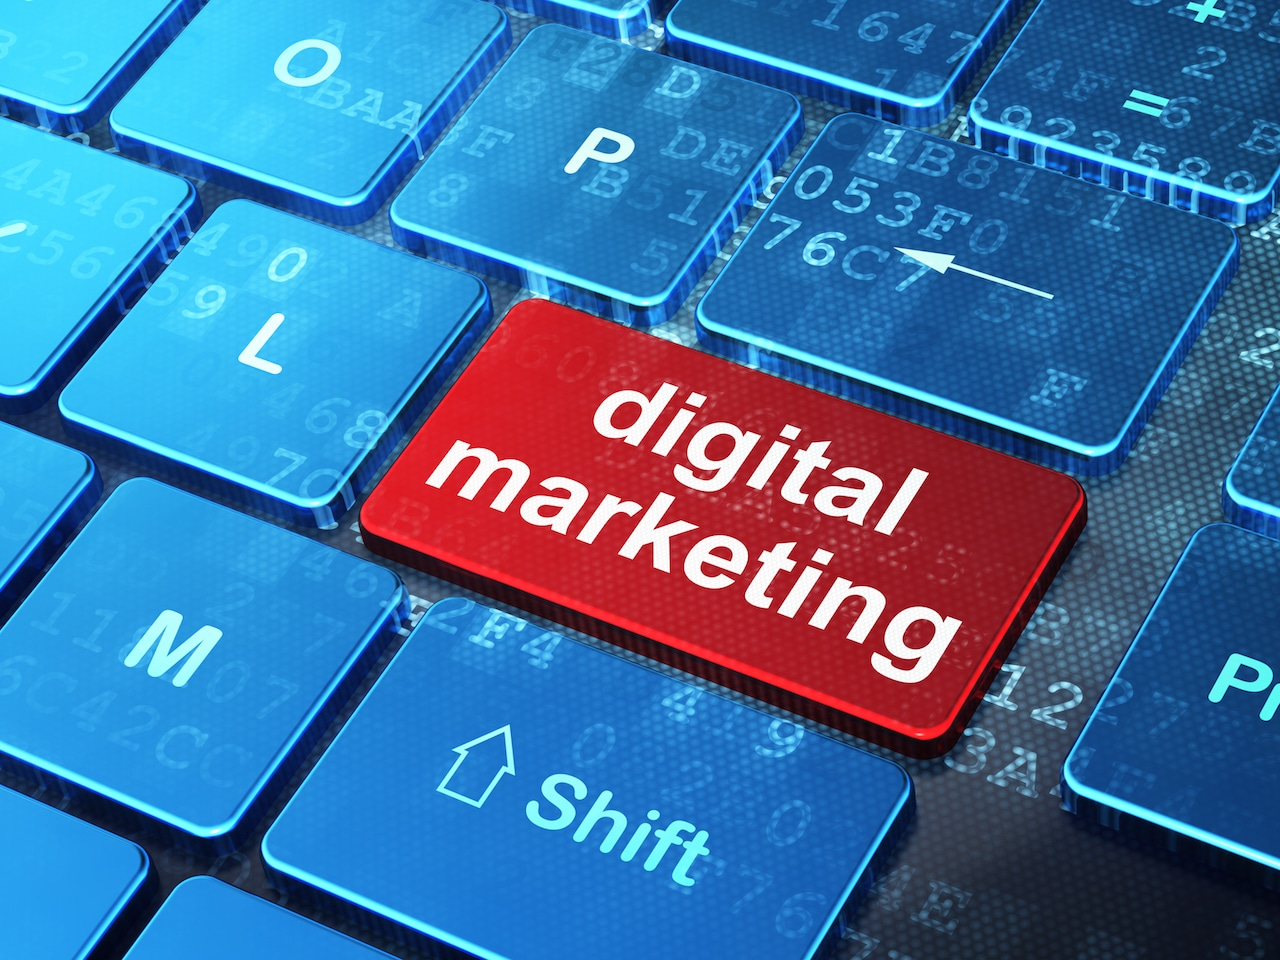 Decoded Magazine presents the essential Digital Marketing guide for artists, DJs, labels and brands in 2016. - Decoded Magazine